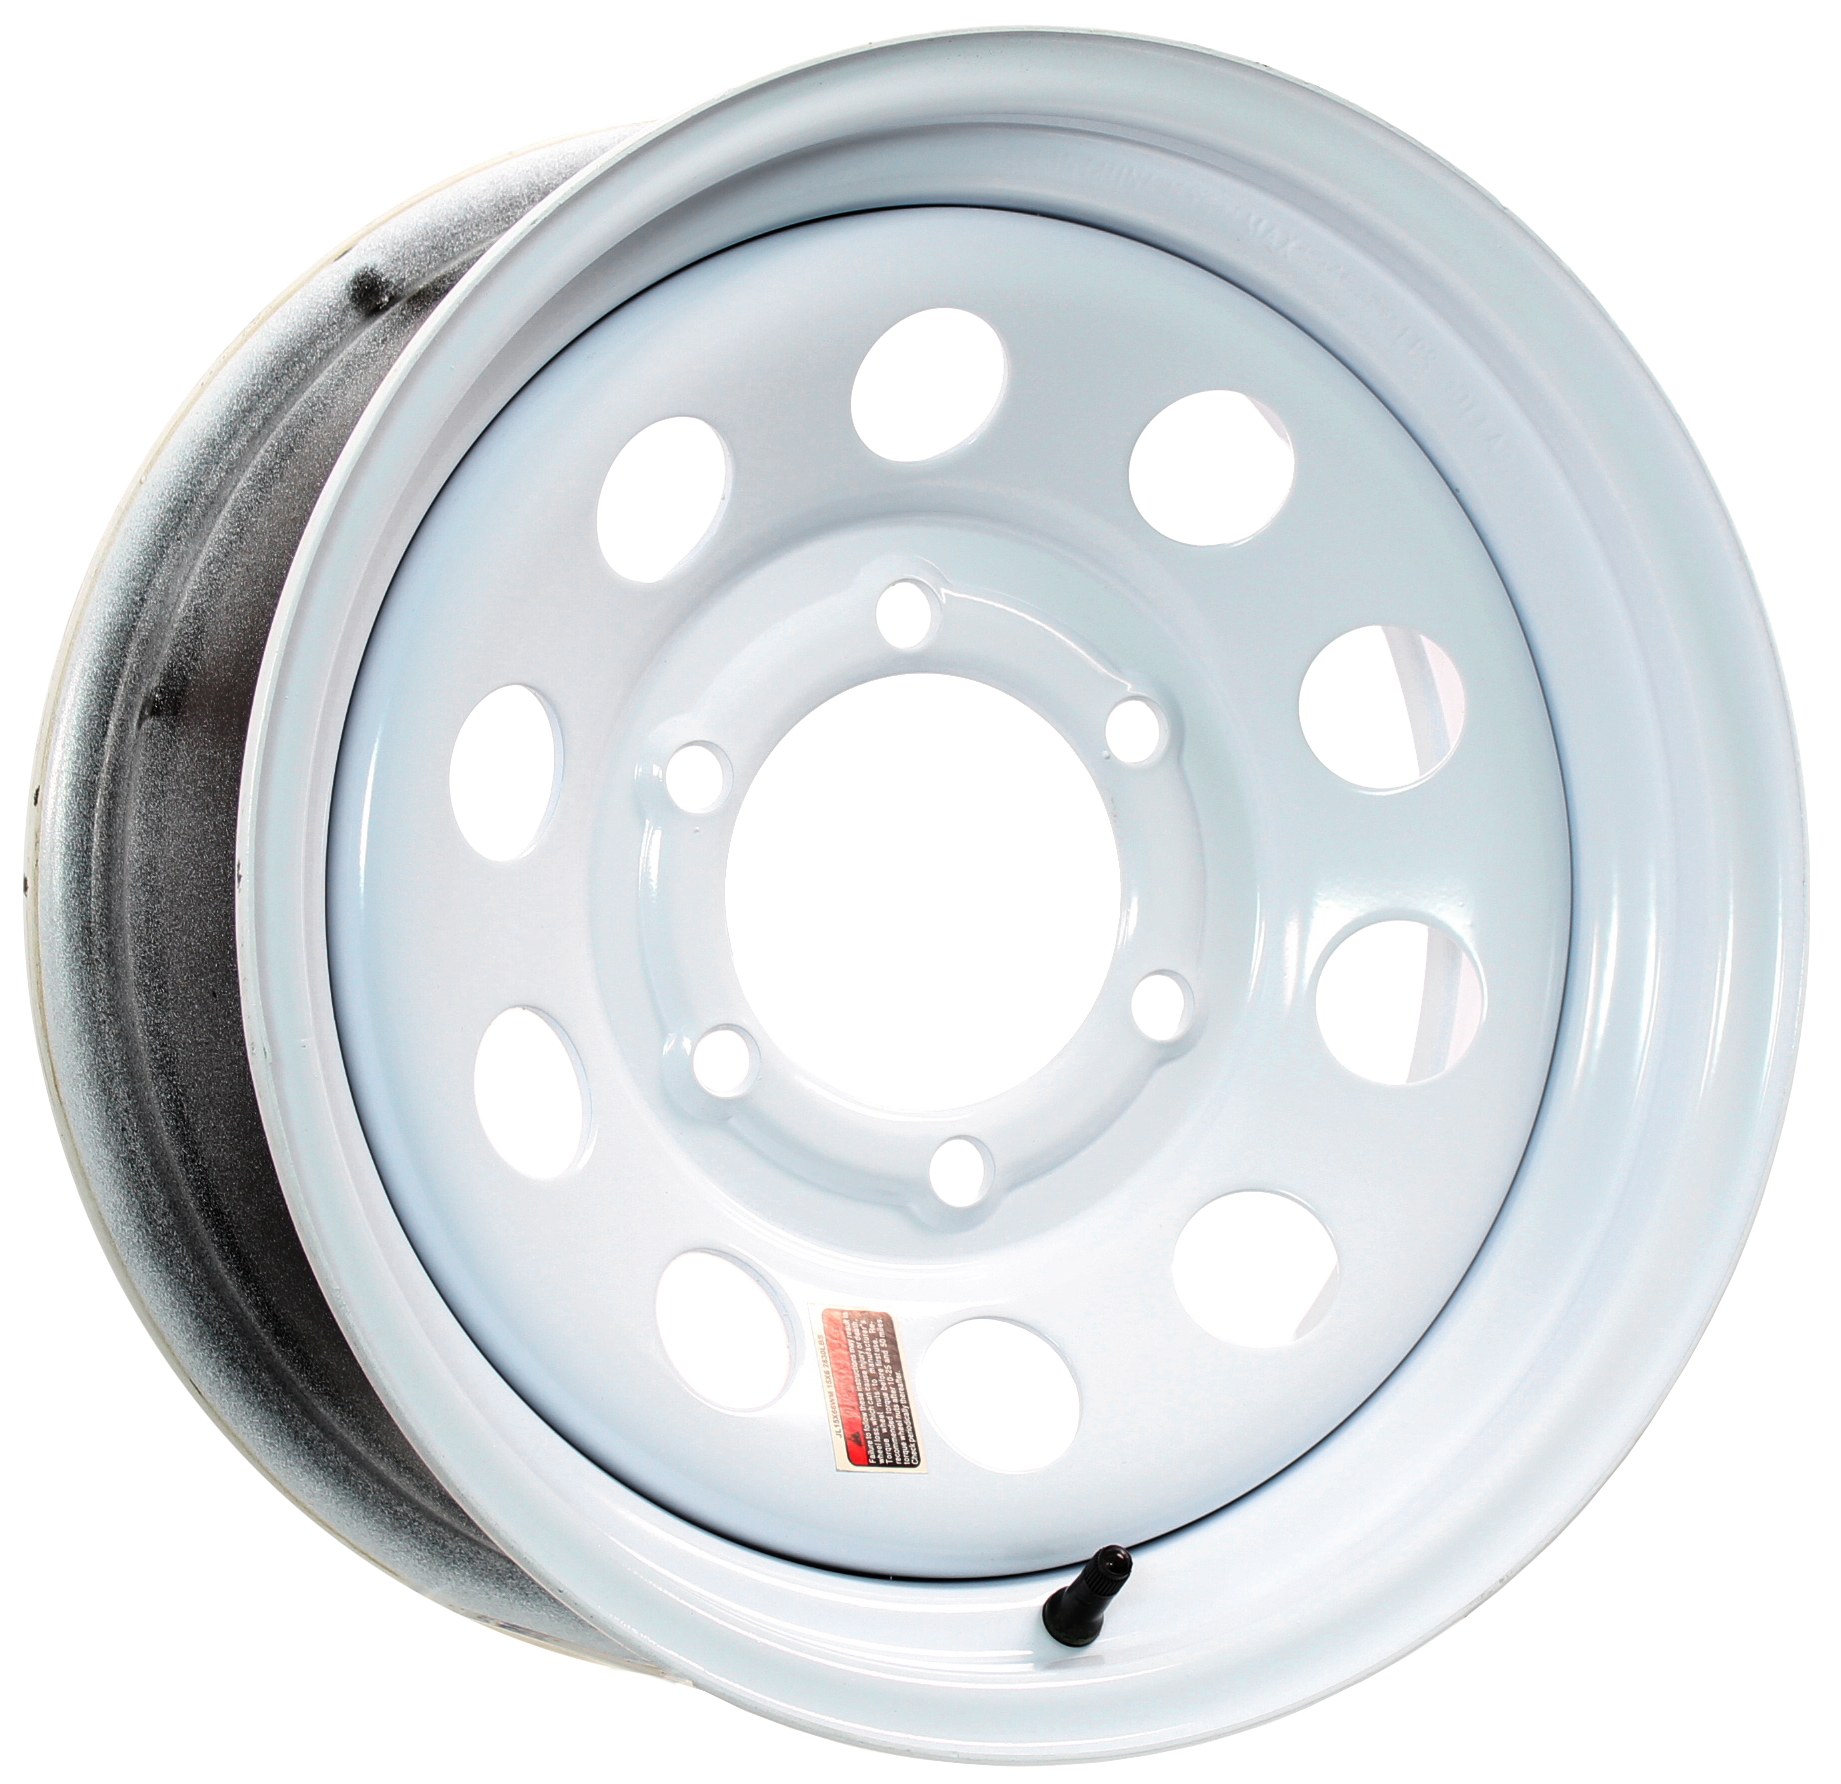 15x6 6-Lug White Mod Steel Trailer Wheel Image